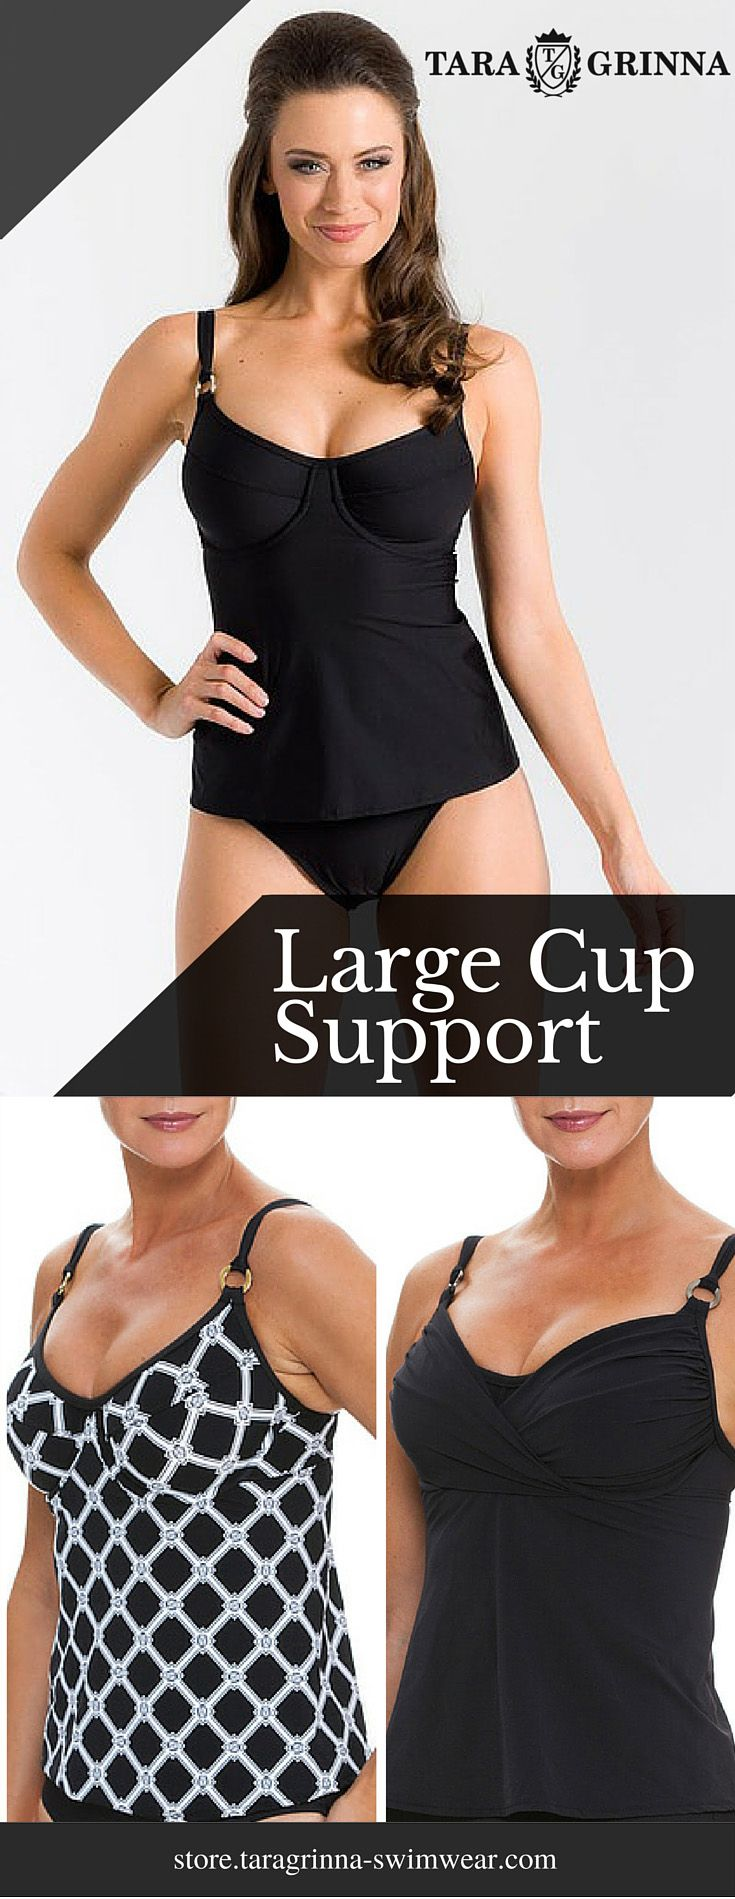 """Big Busts Support ★★★★★ """"This is the BEST bathing suit that provides support and lift for a full bust! First off it is hard to find a true bra-sized bathing suit larger than a DD cup anywhere.This top holds you up in all the right places while being fun, youthful and sexy. High quality fabric and construction. I will be defininitely ordering more!"""" Jane Black and White Tankini $112 Black Cup Sized Tankini $110.00 See now at http://store.taragrinna-swimwear.com/bestselling/"""